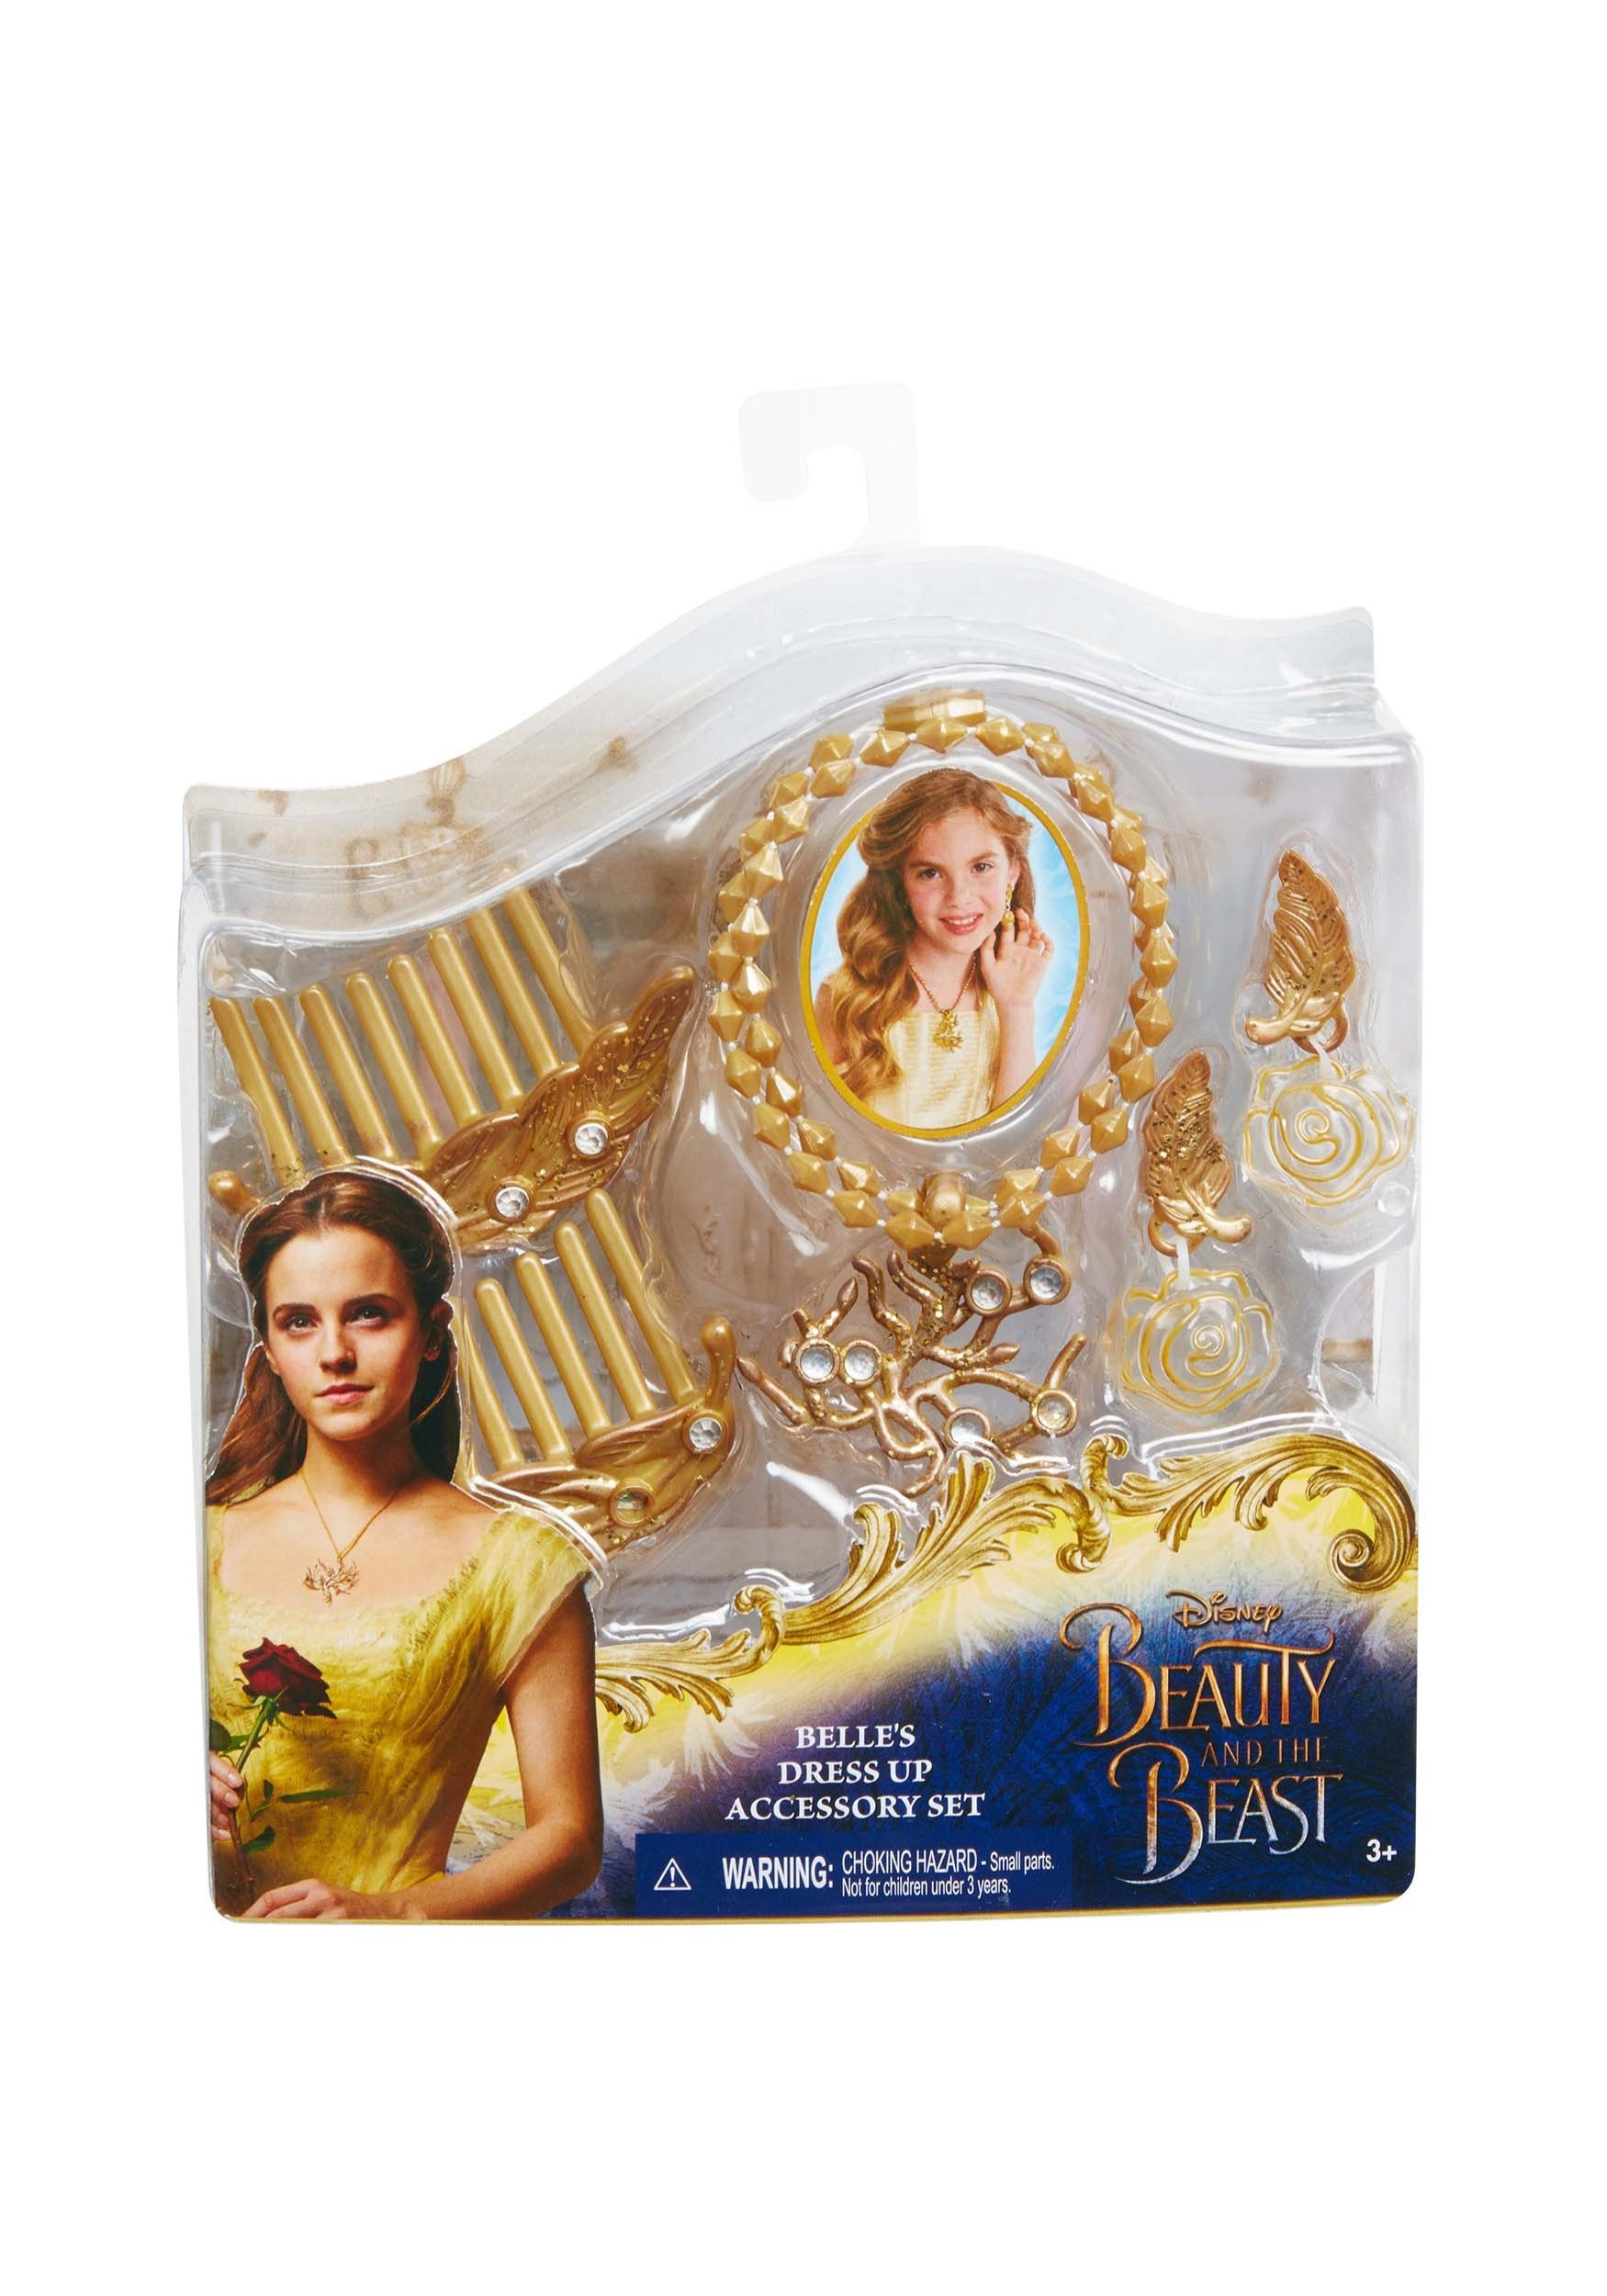 Belle S Diary Bohemian Style: Beauty & The Beast Belle's Dress Up Accessory Set For Girls